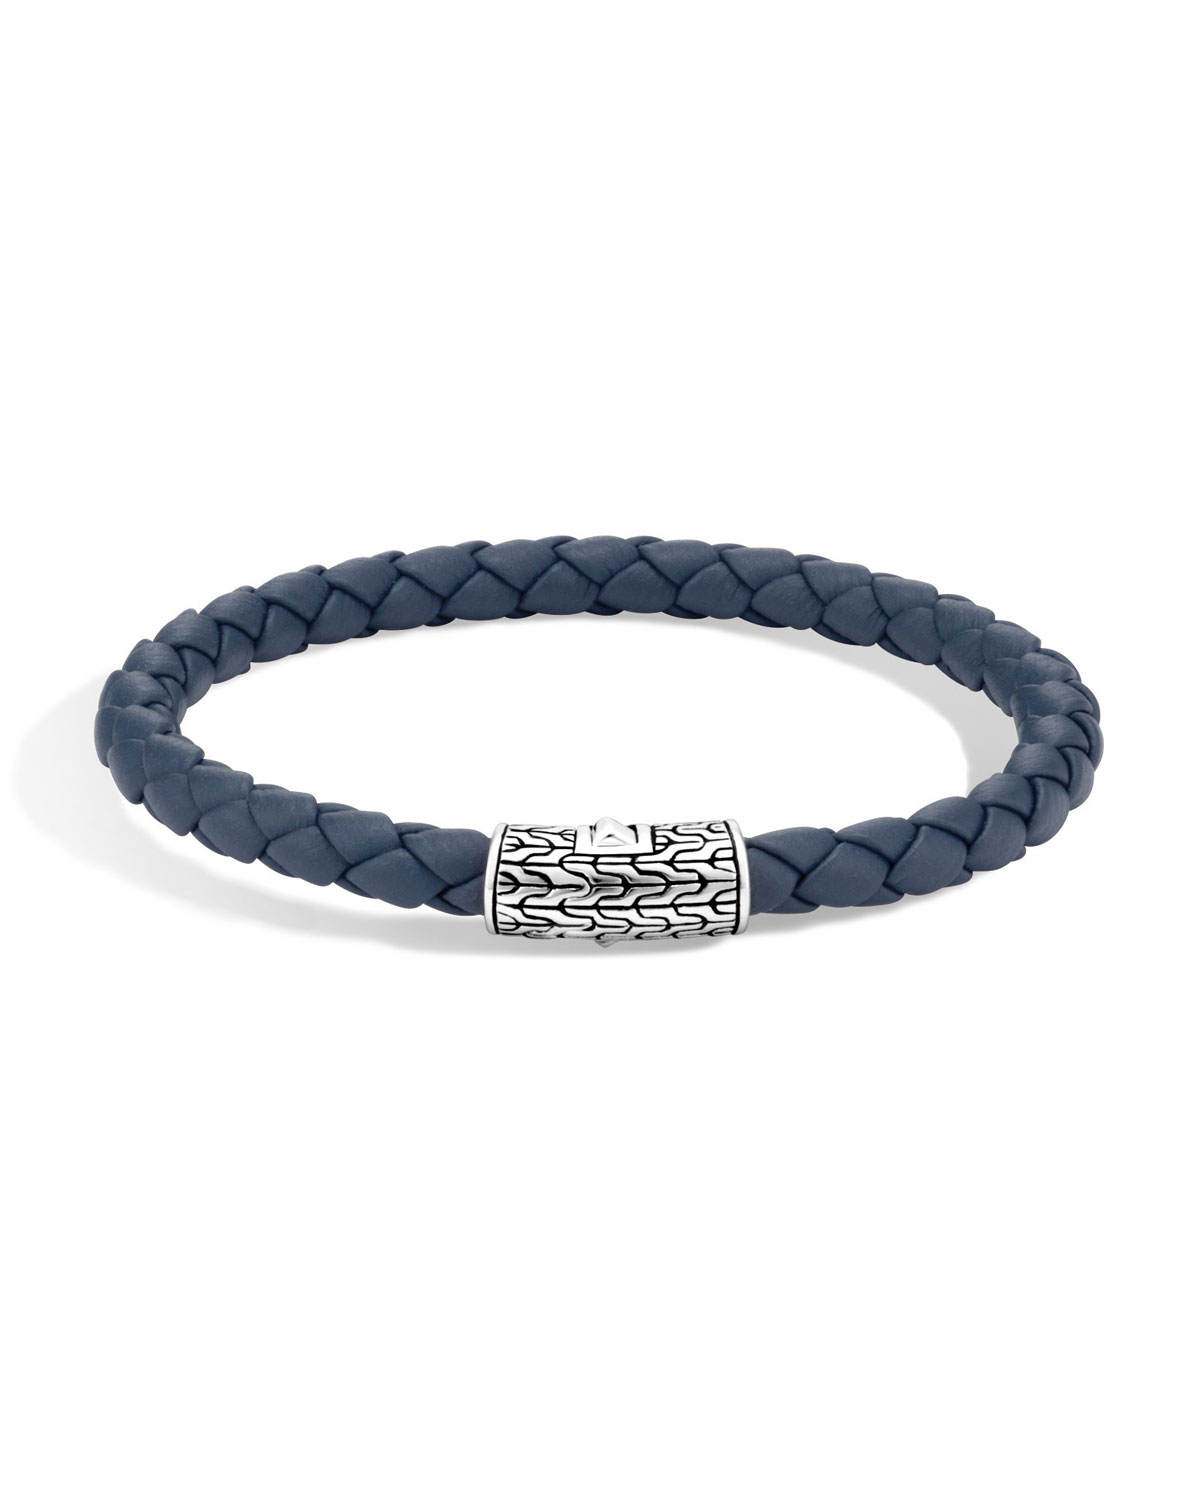 Clic Chain Silver Round Woven Bracelet On Blue Leather Cord